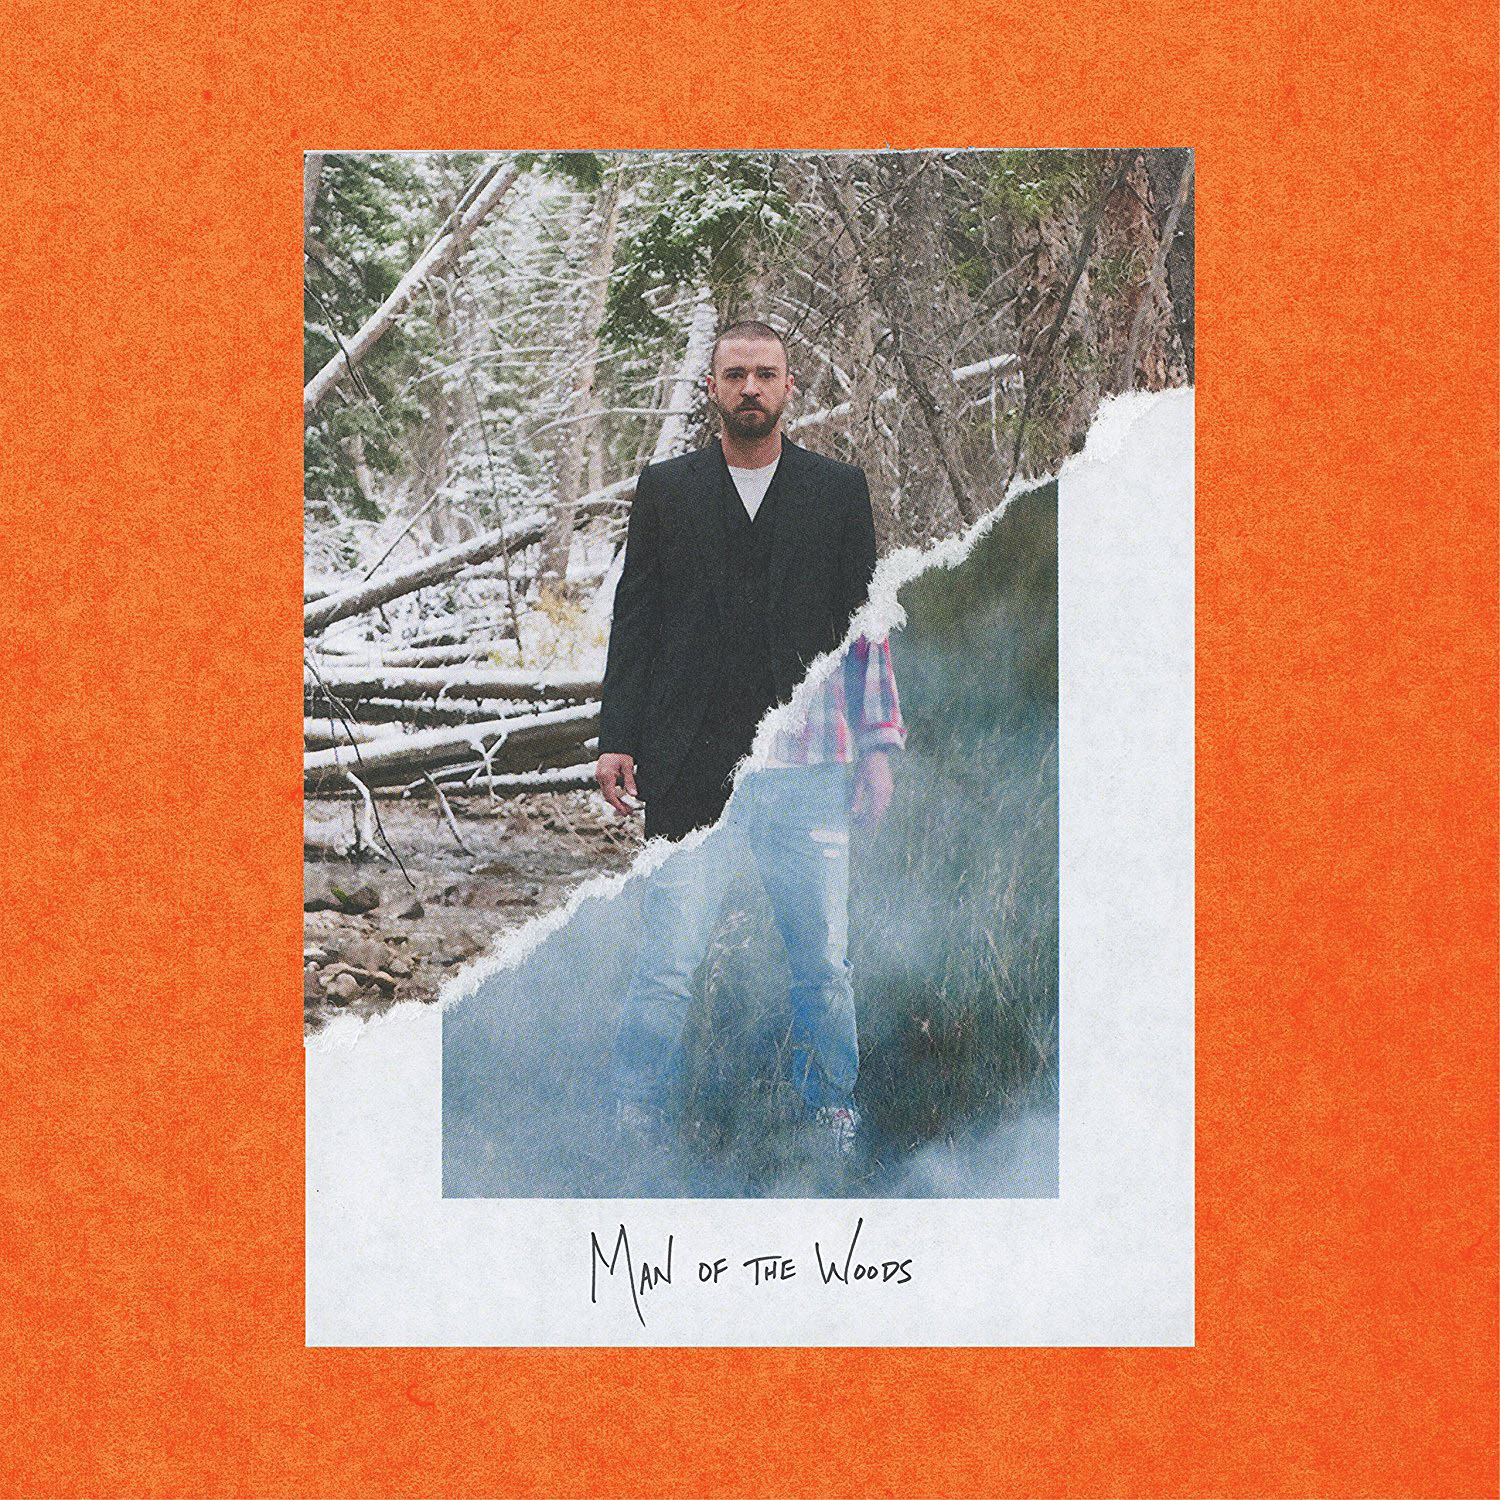 Songs to love: Justin Timberlake – Man in the woods